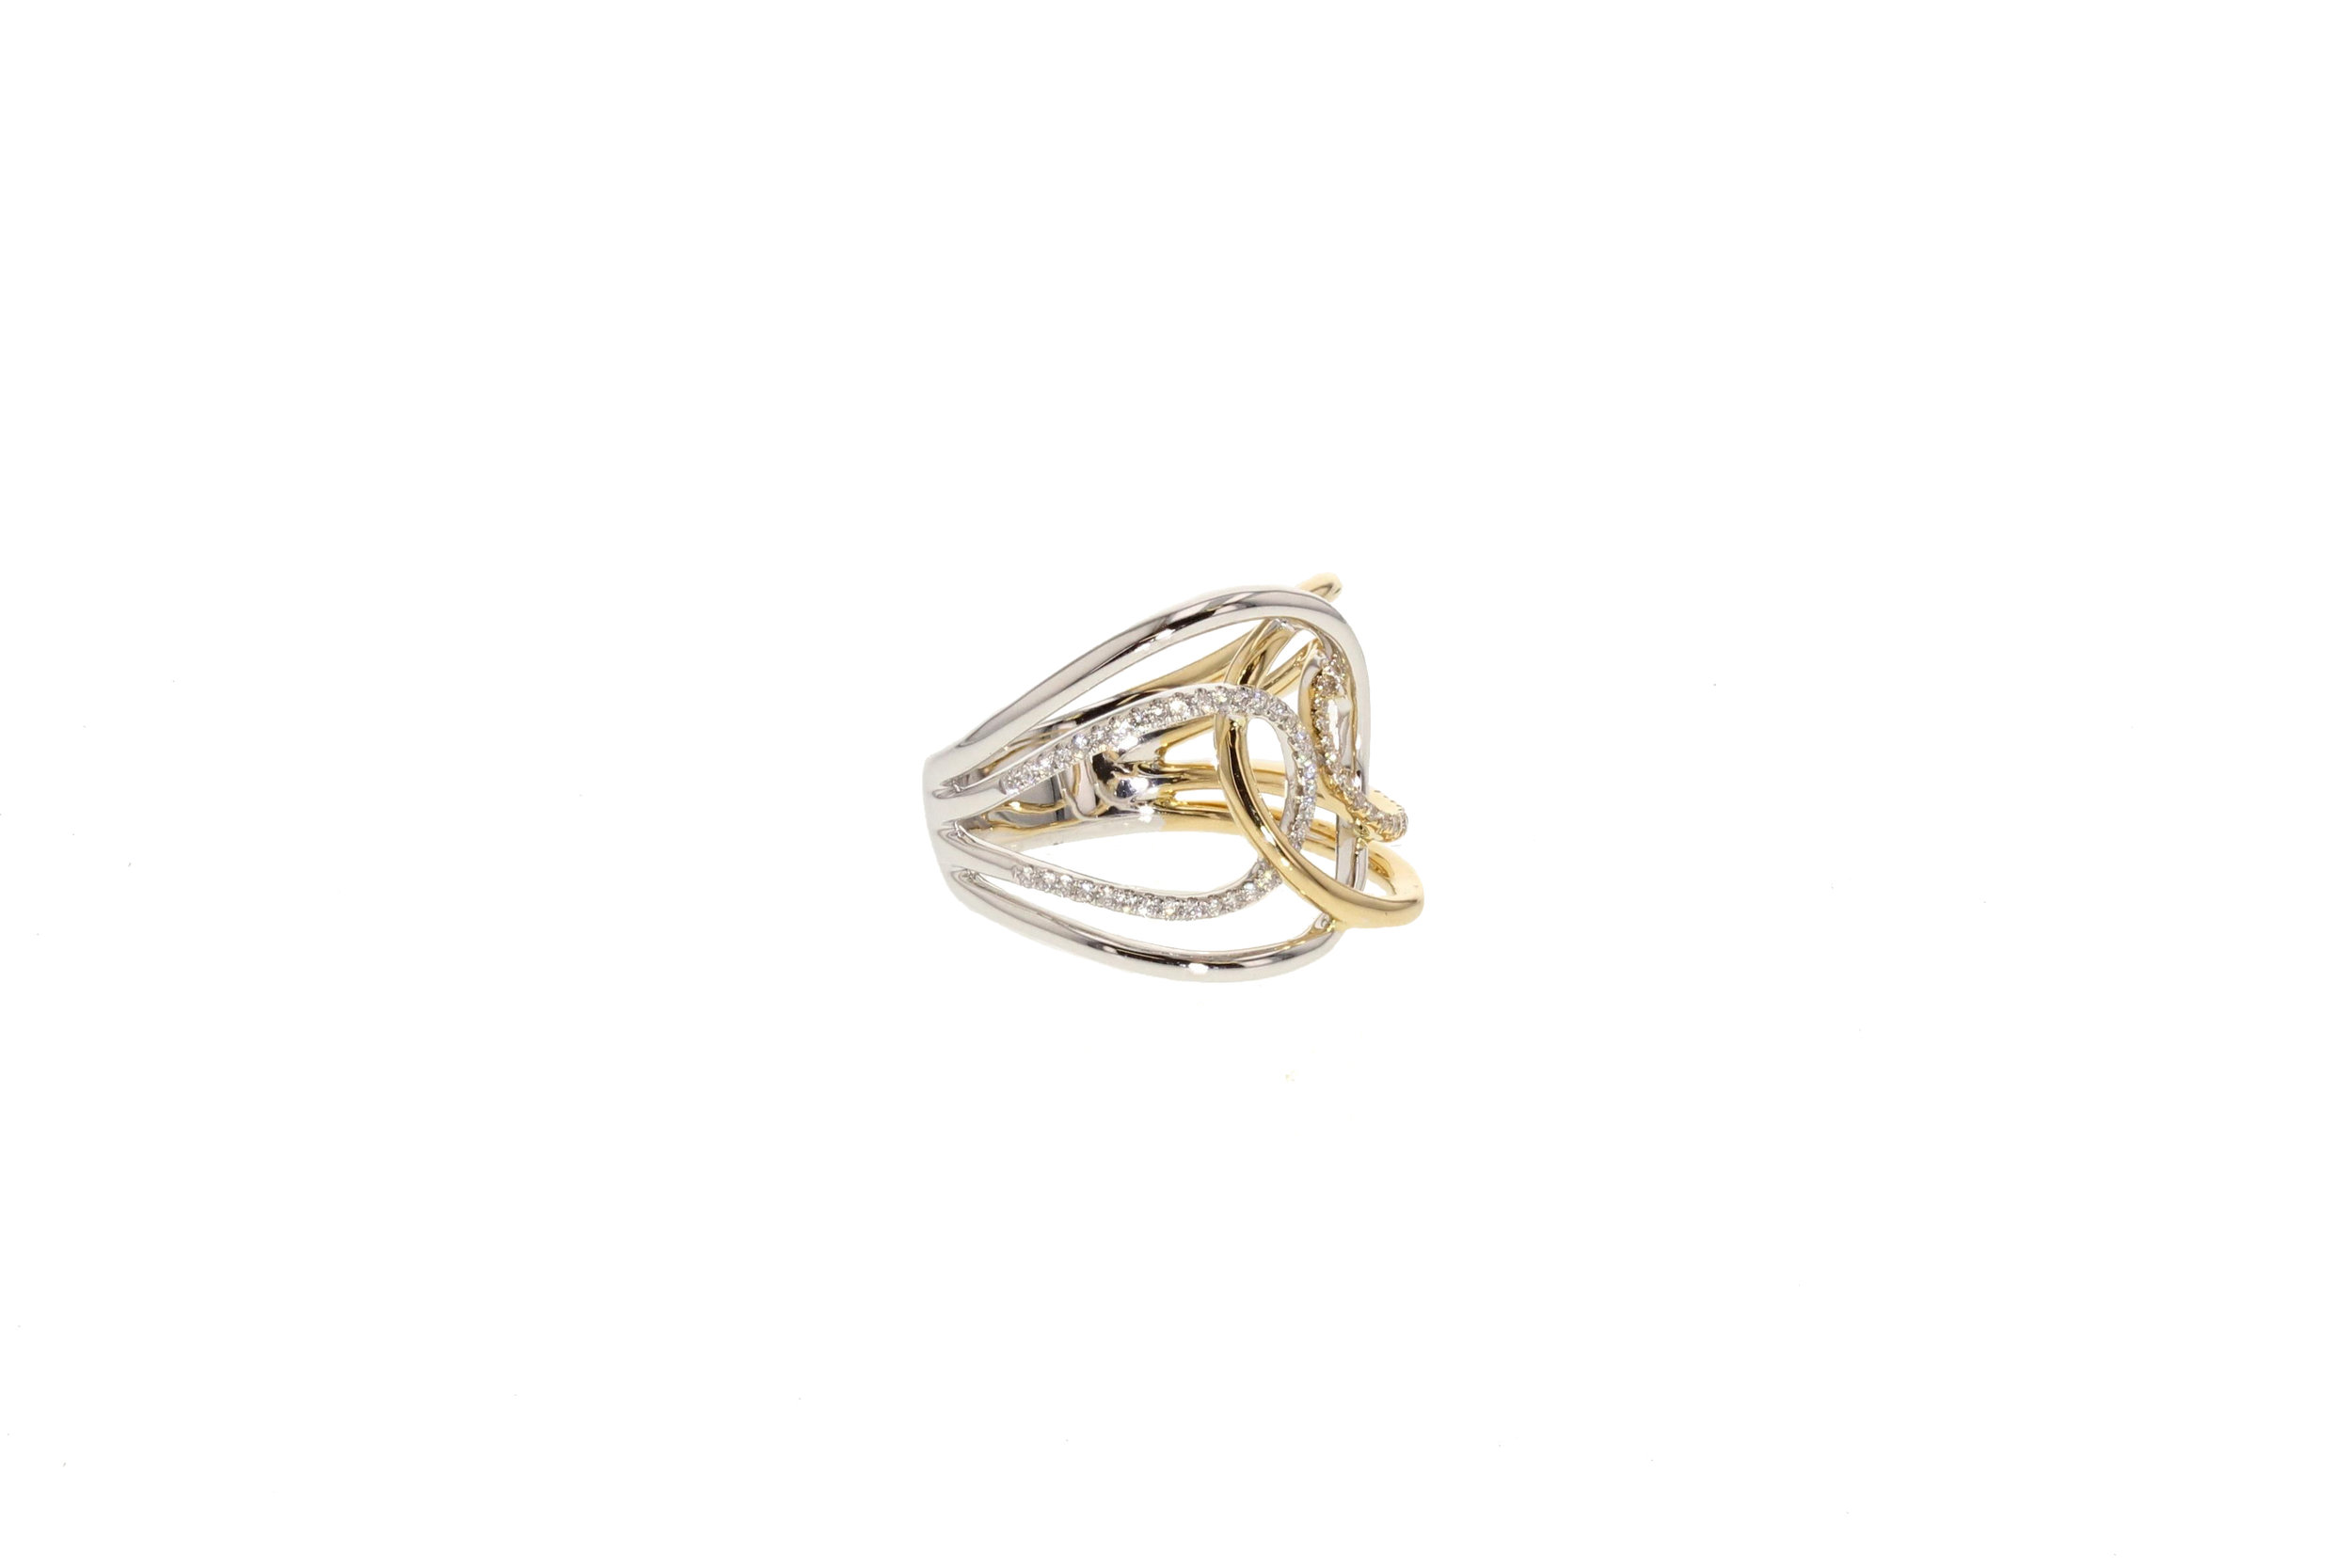 18kt Yellow and White Gold Double By-Pass Ring 0.27 tcw.$3380